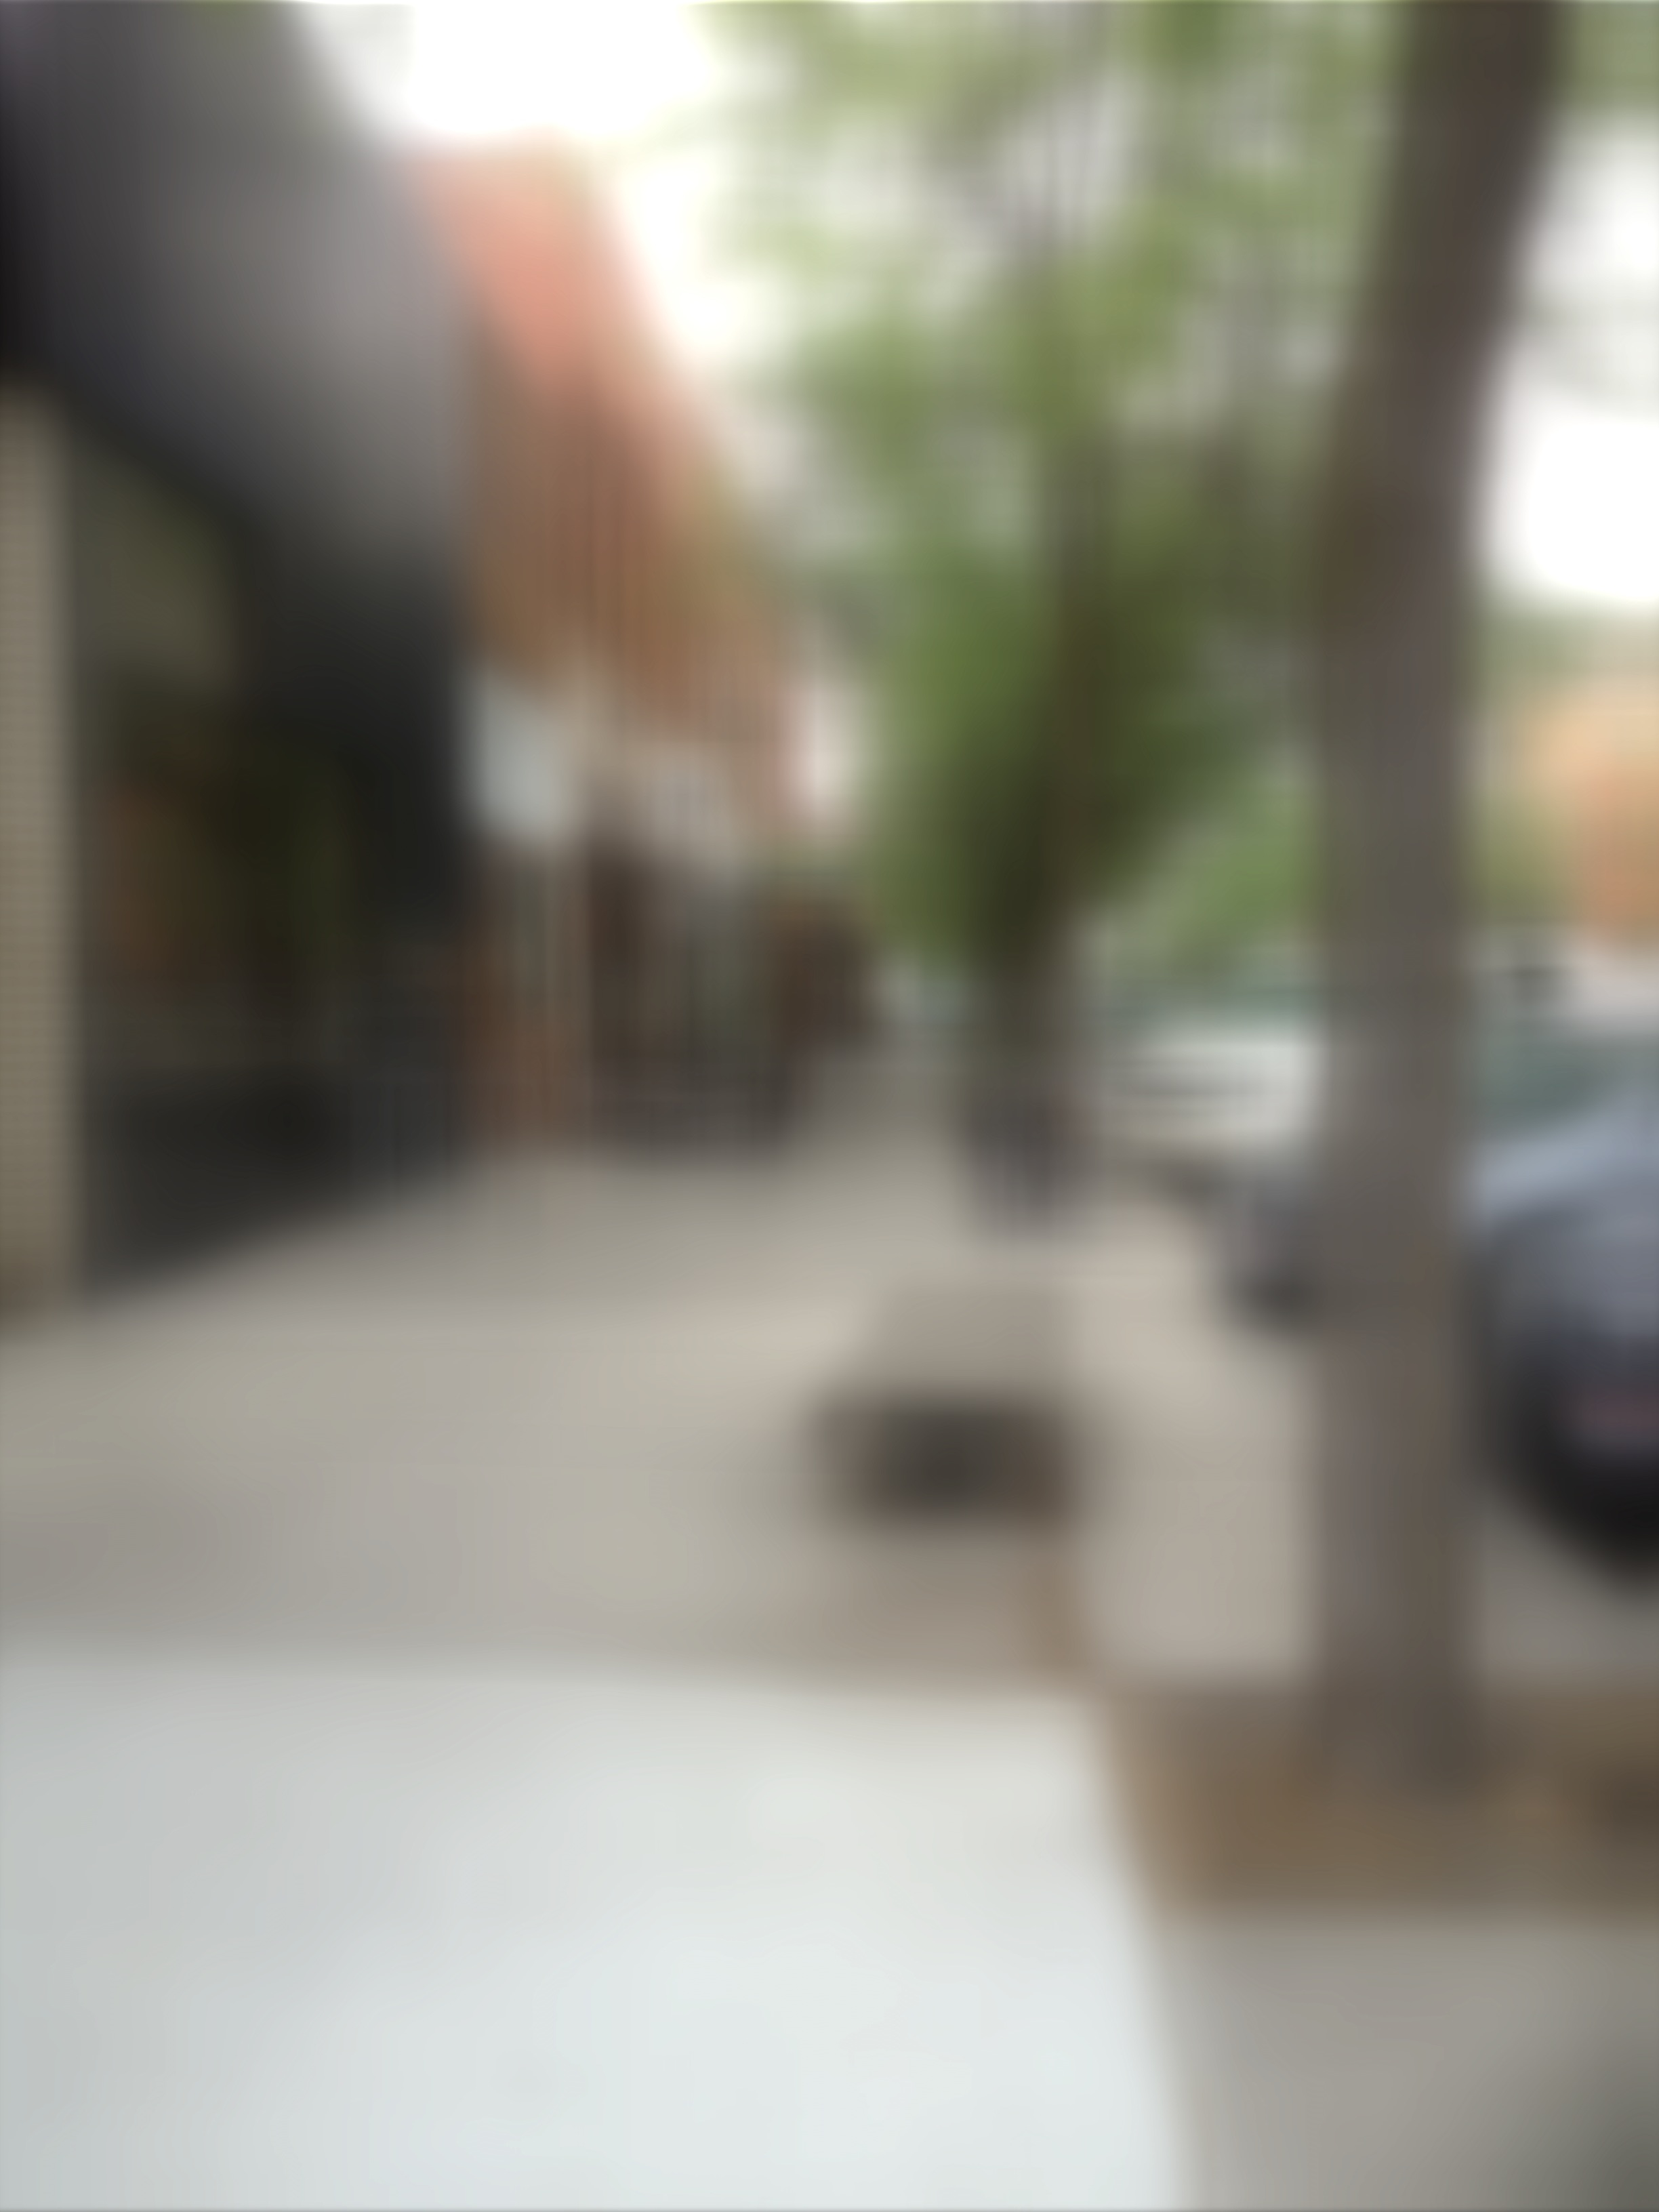 same street scene totally out of focus. The temperature sign is not distinguishable at all.